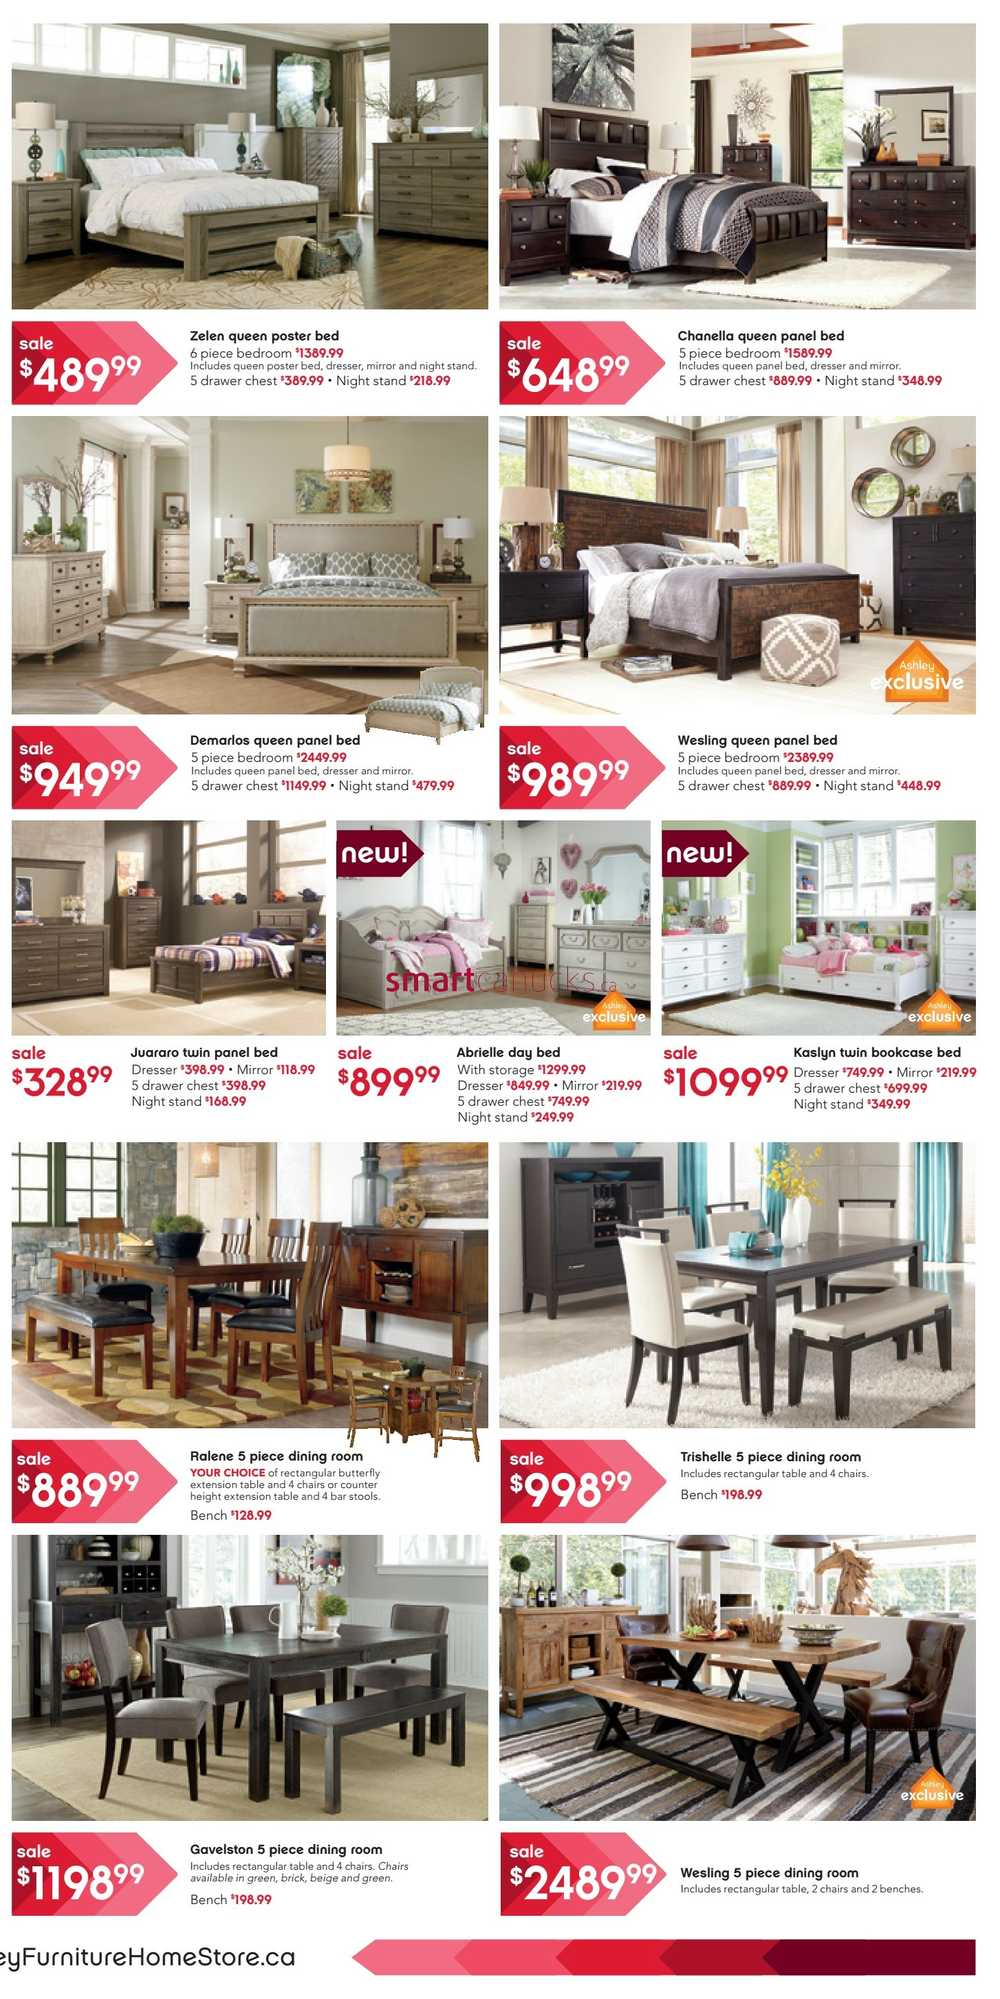 Ashley furniture home store west flyer september 17 to 30 for Ashley furniture homestore canada